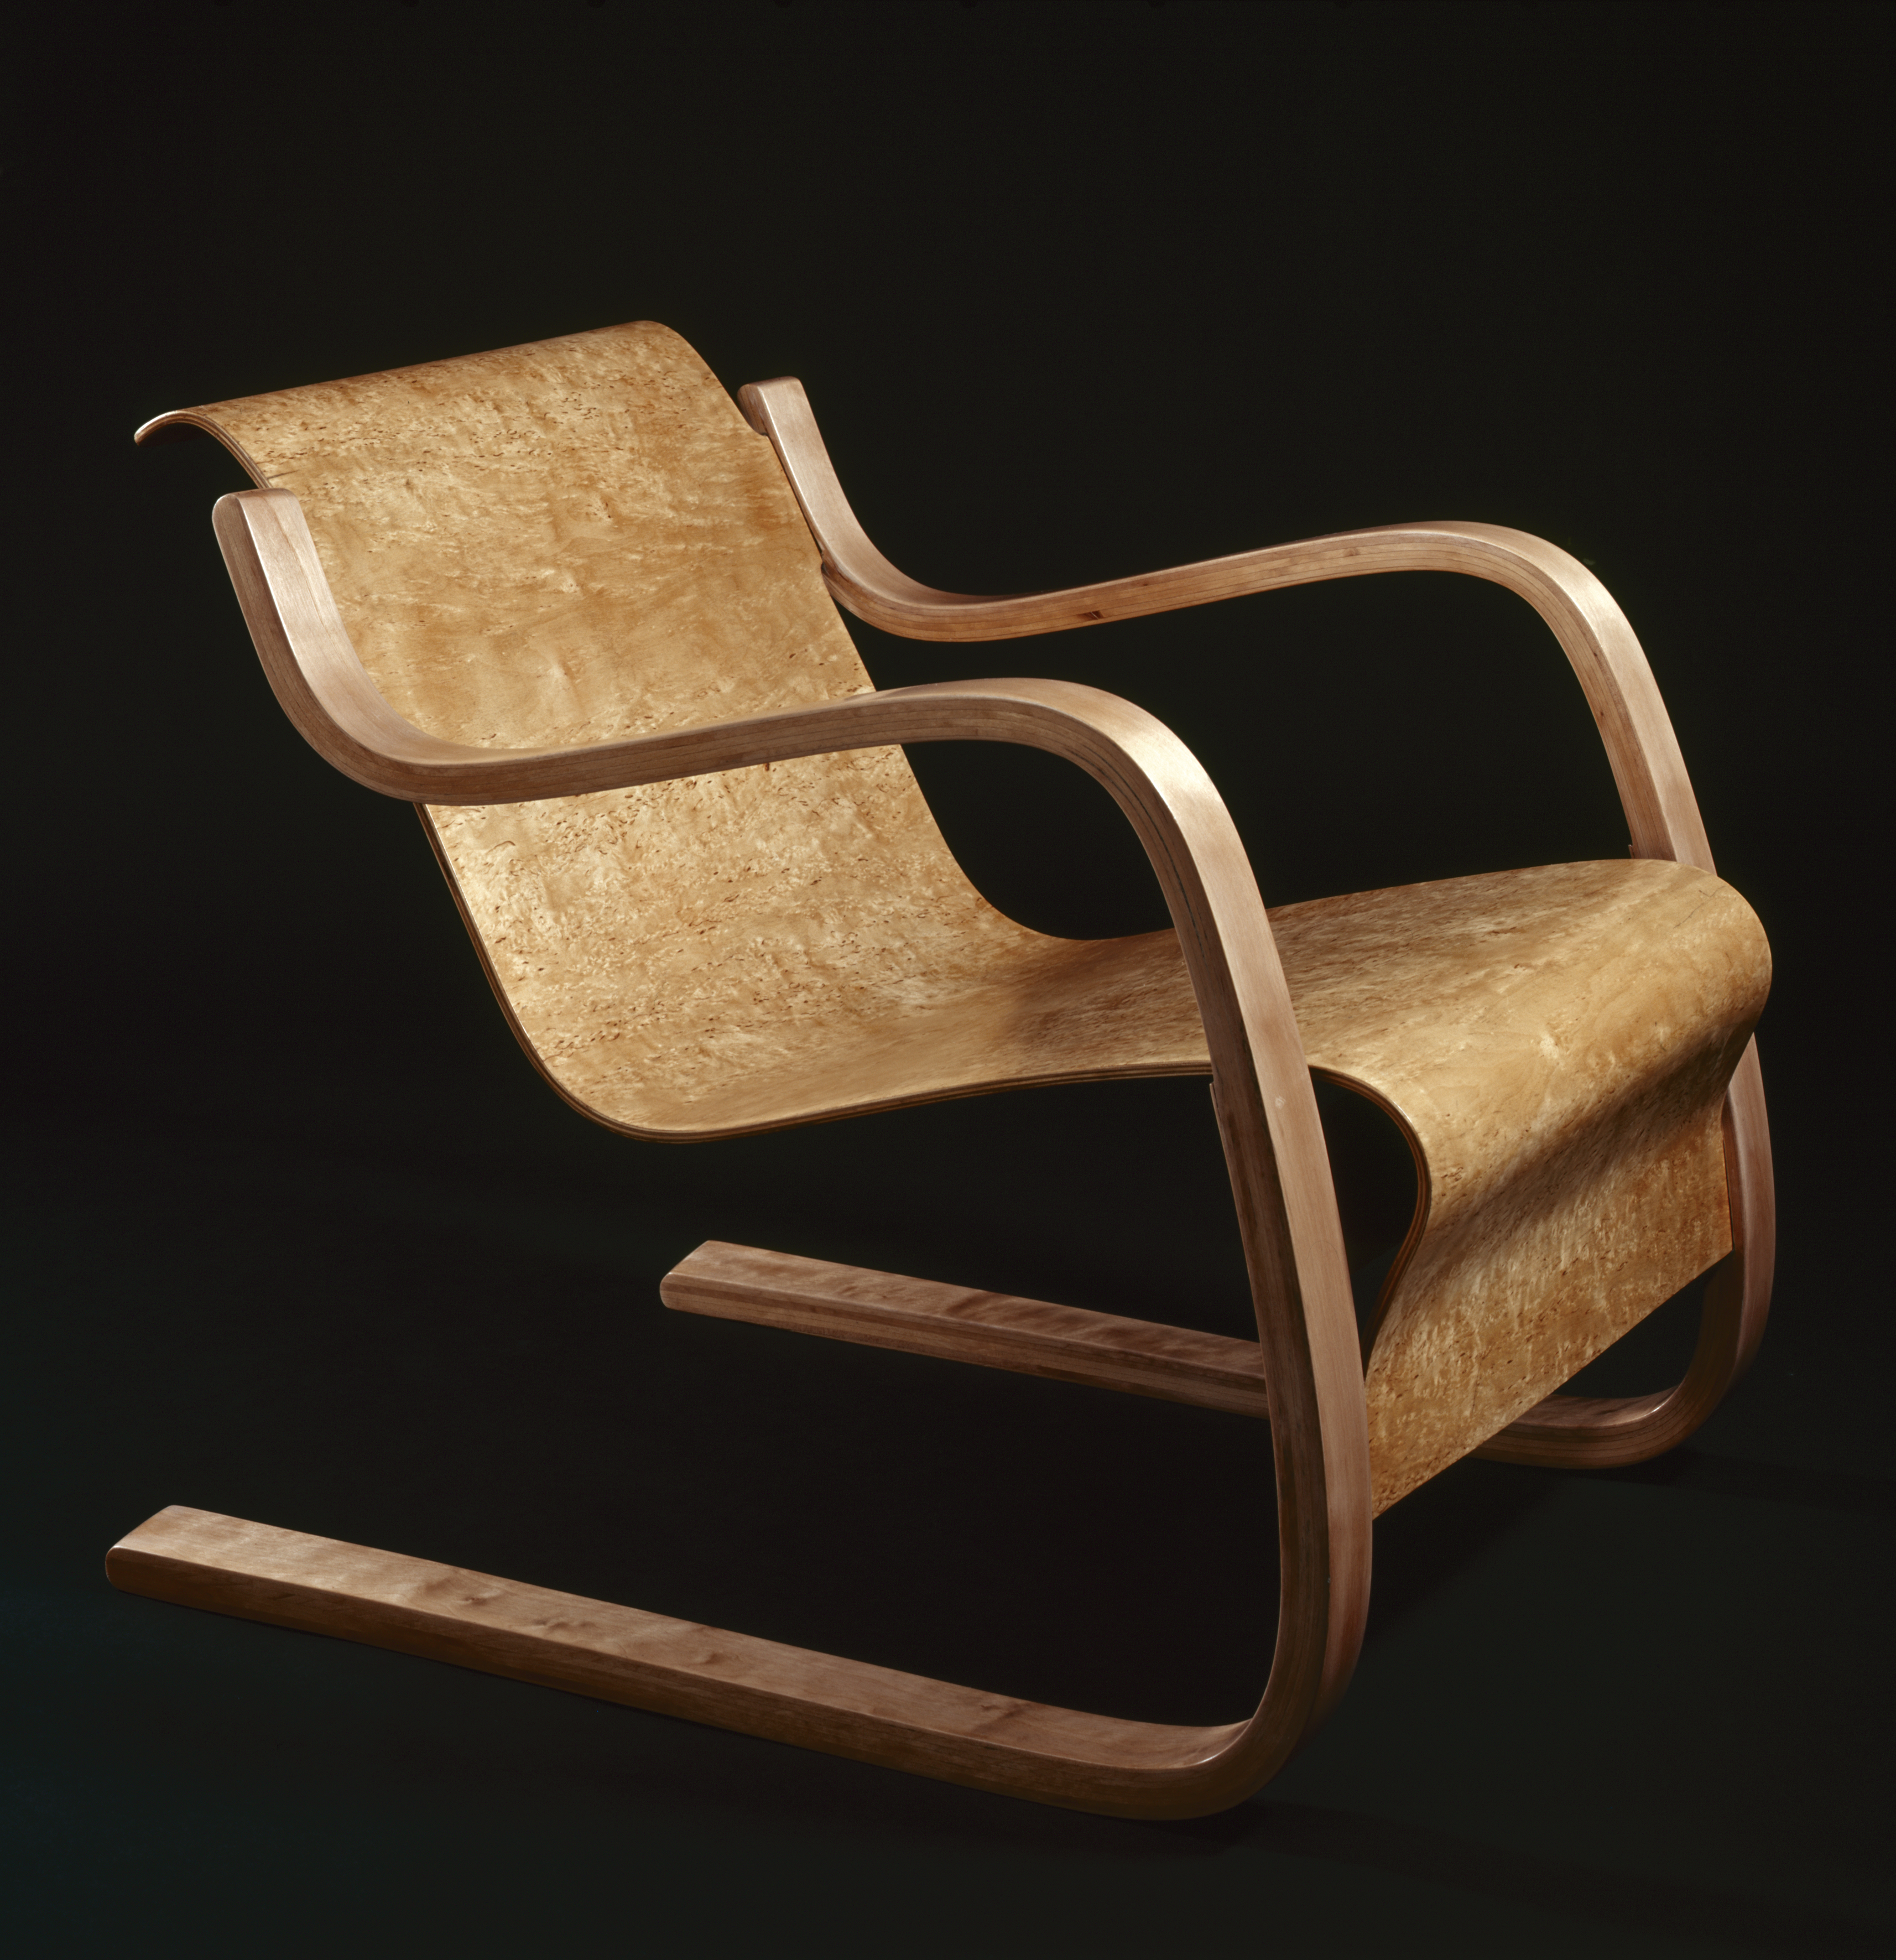 Alvar Aalto and innovations in bending wood. Alvar Aalto and innovations in bending wood   Gallery Guides